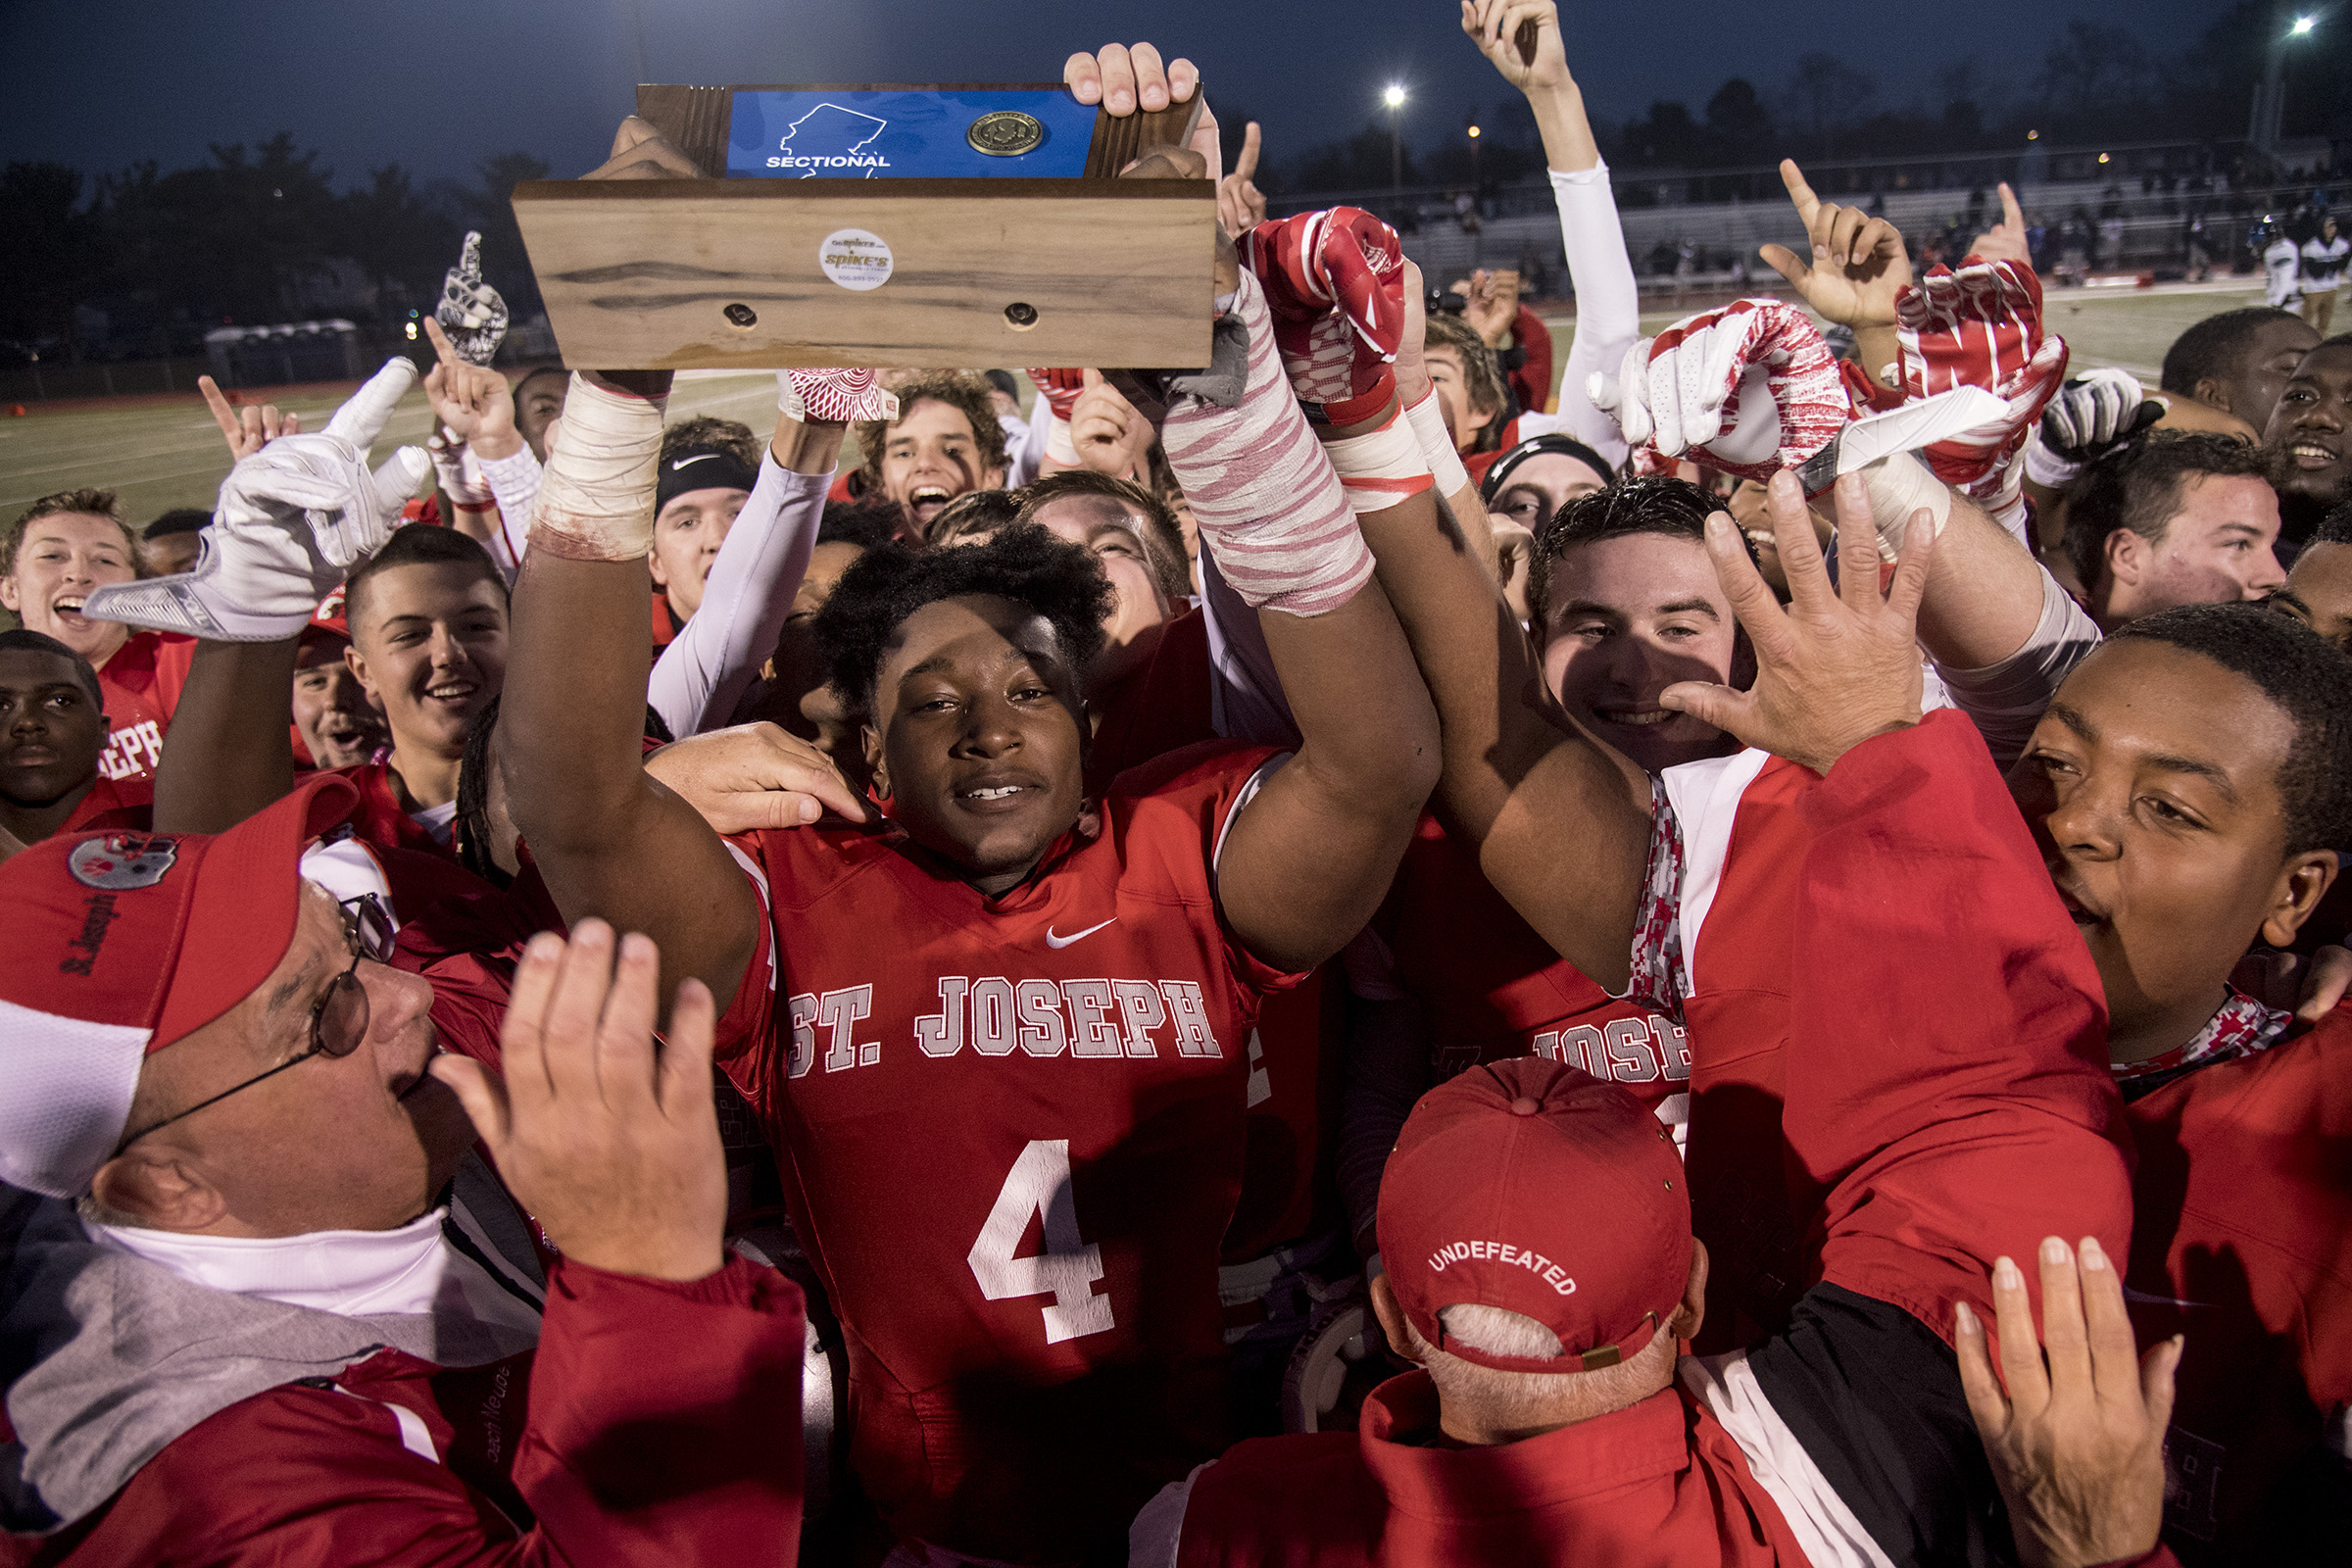 St. Joseph senior Qwahsin Townsel and teammates celebrate state title.